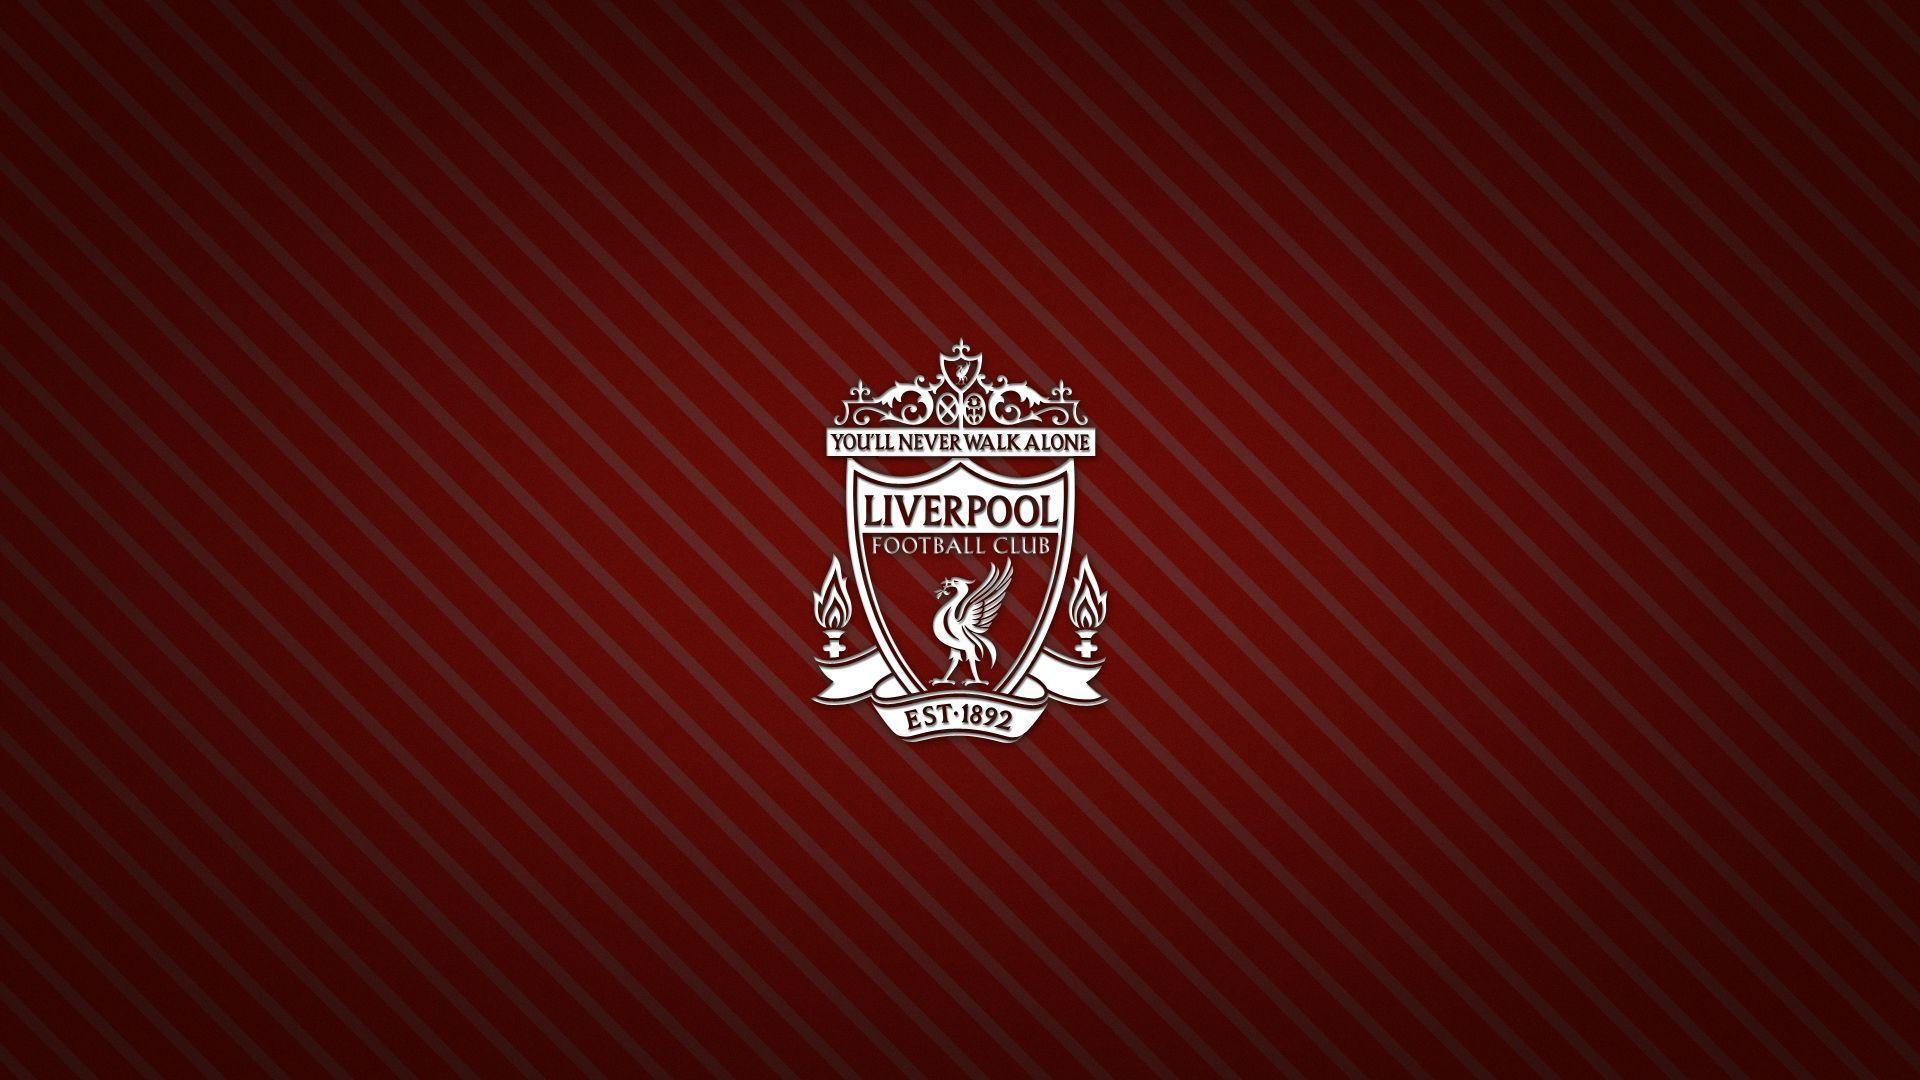 liverpool wallpapers for pc - photo #1